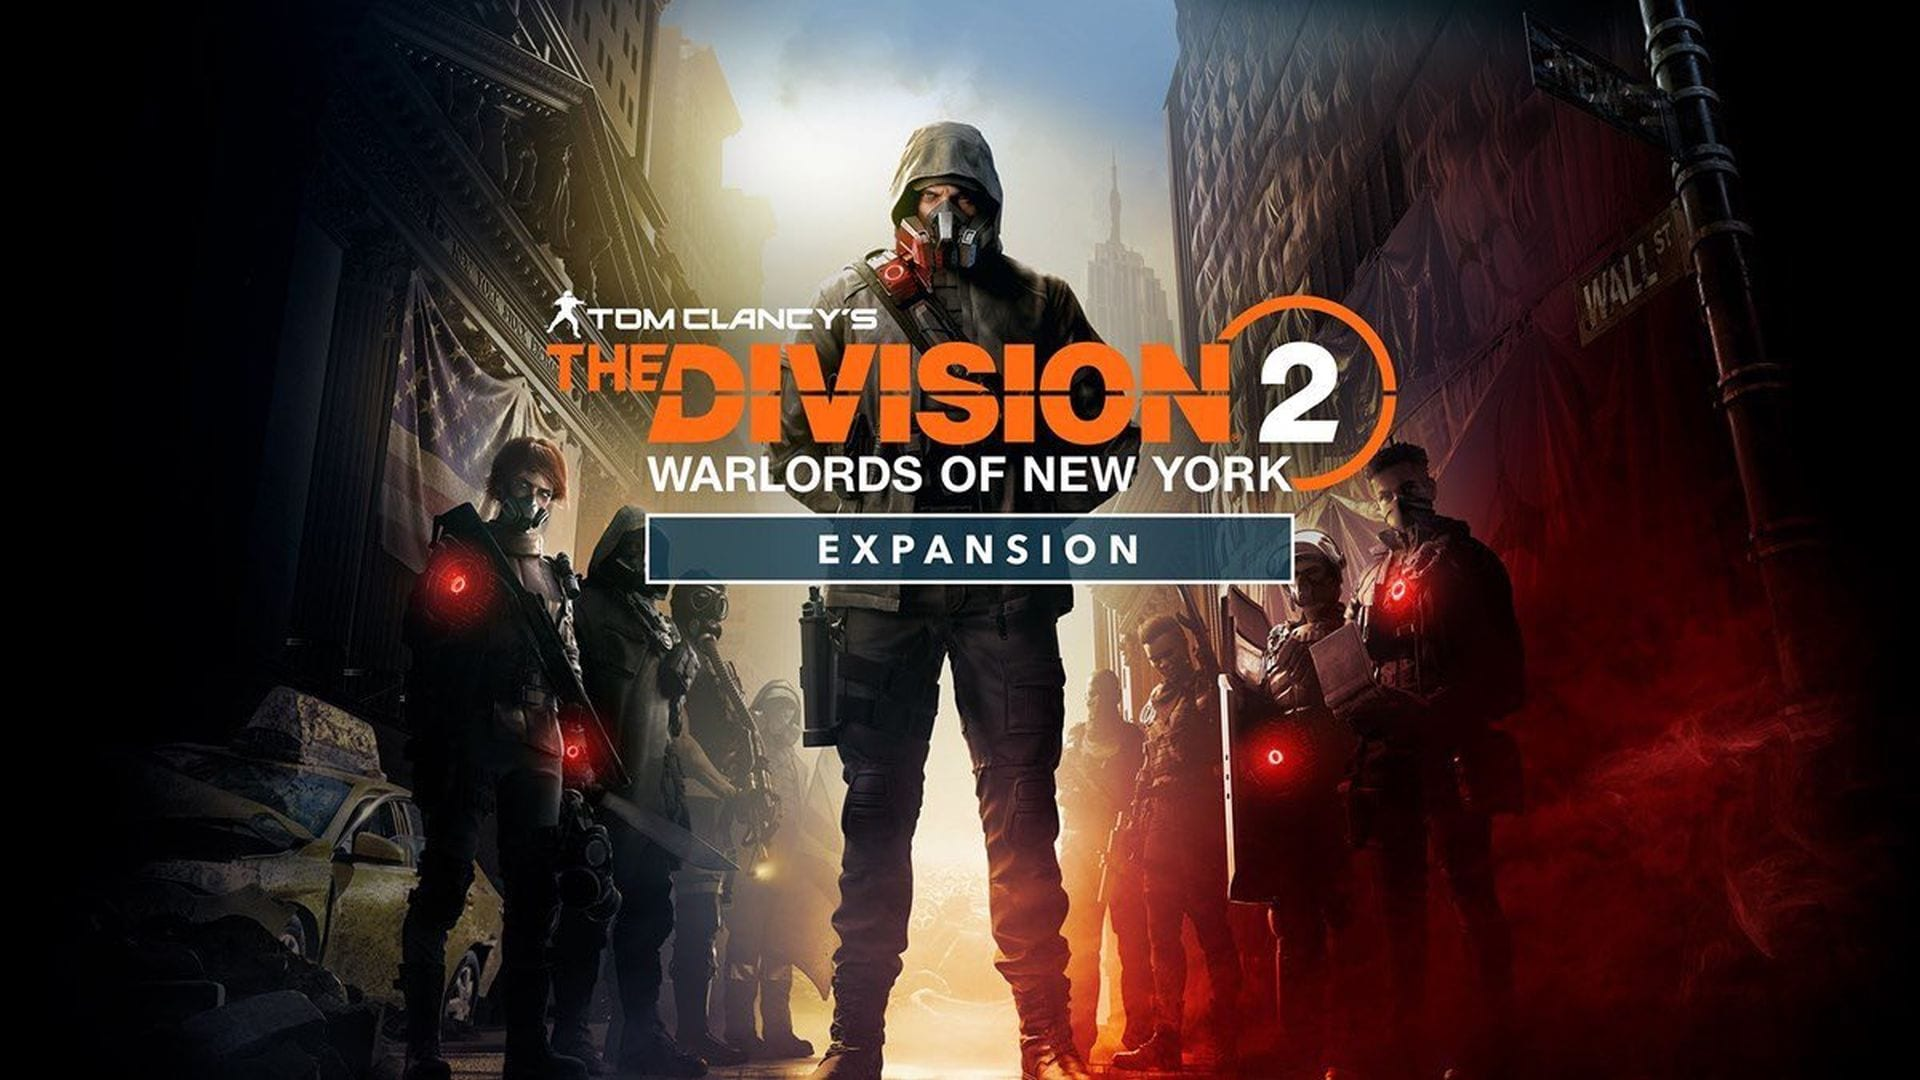 Tom Clancy's The Division 2: Warlords of New York Expansion Coming March 3rd